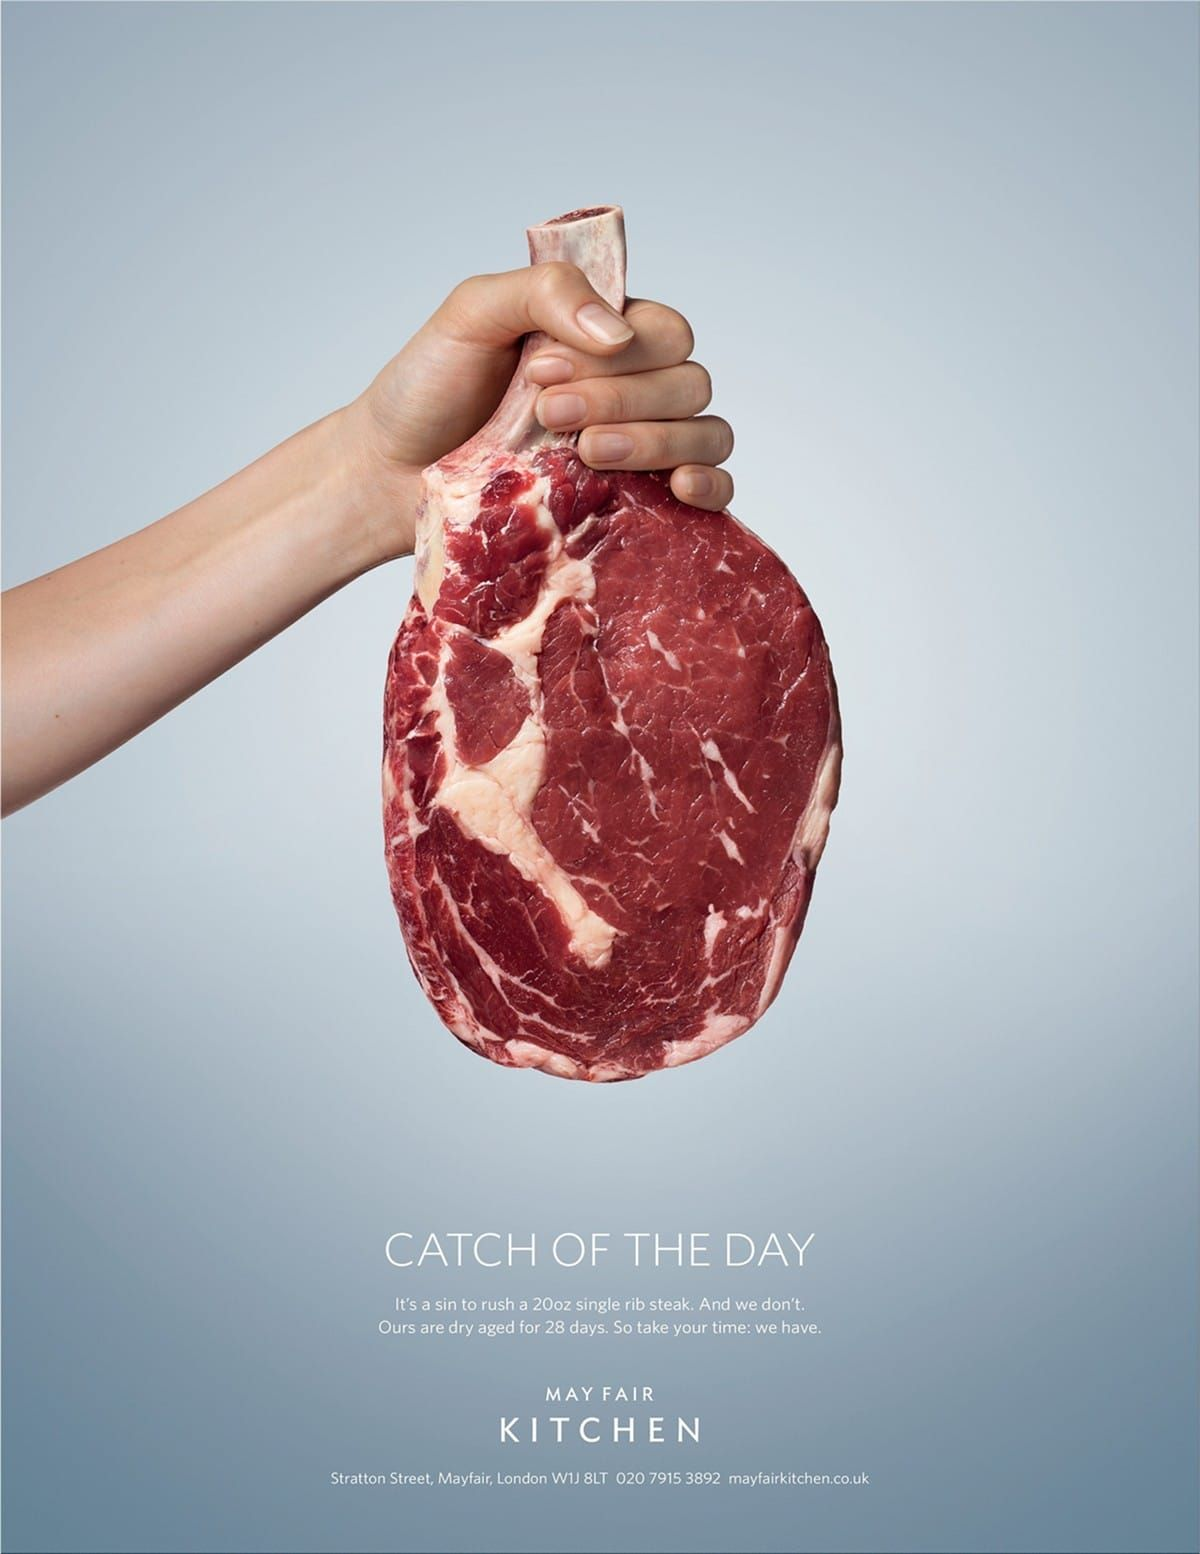 May Fair Kitchen: Catch of the day|May Fair Kitchen ads